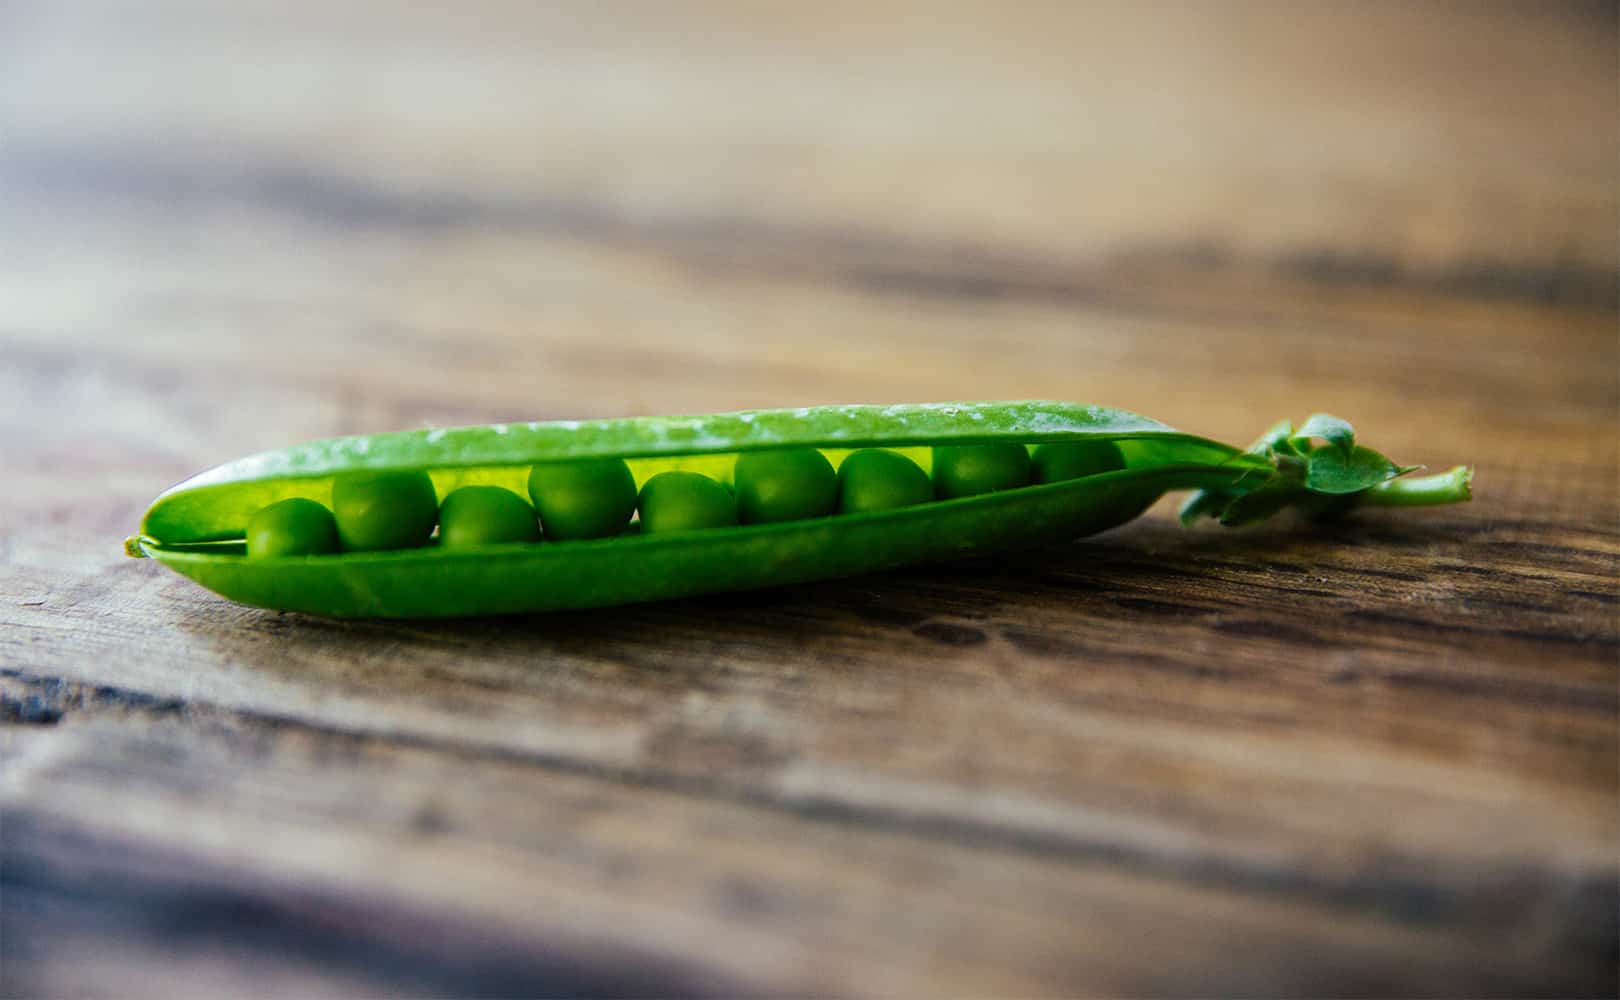 Close up of a half-open pea pod with peas in it on a wooden table.